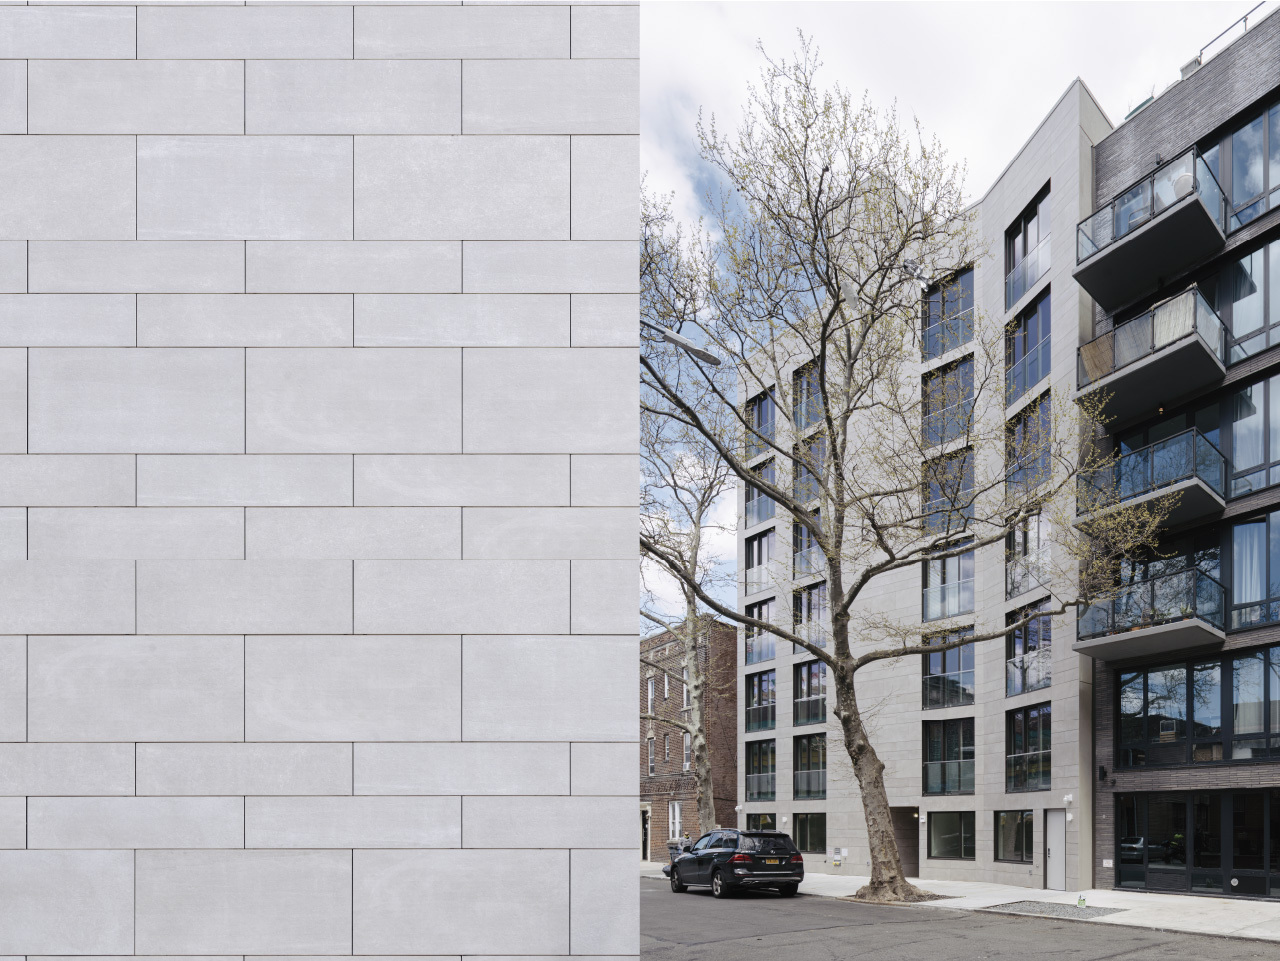 15 East 19 Street Staggered pattern large format porcelain panels at Porcelain cladding facade multi family building